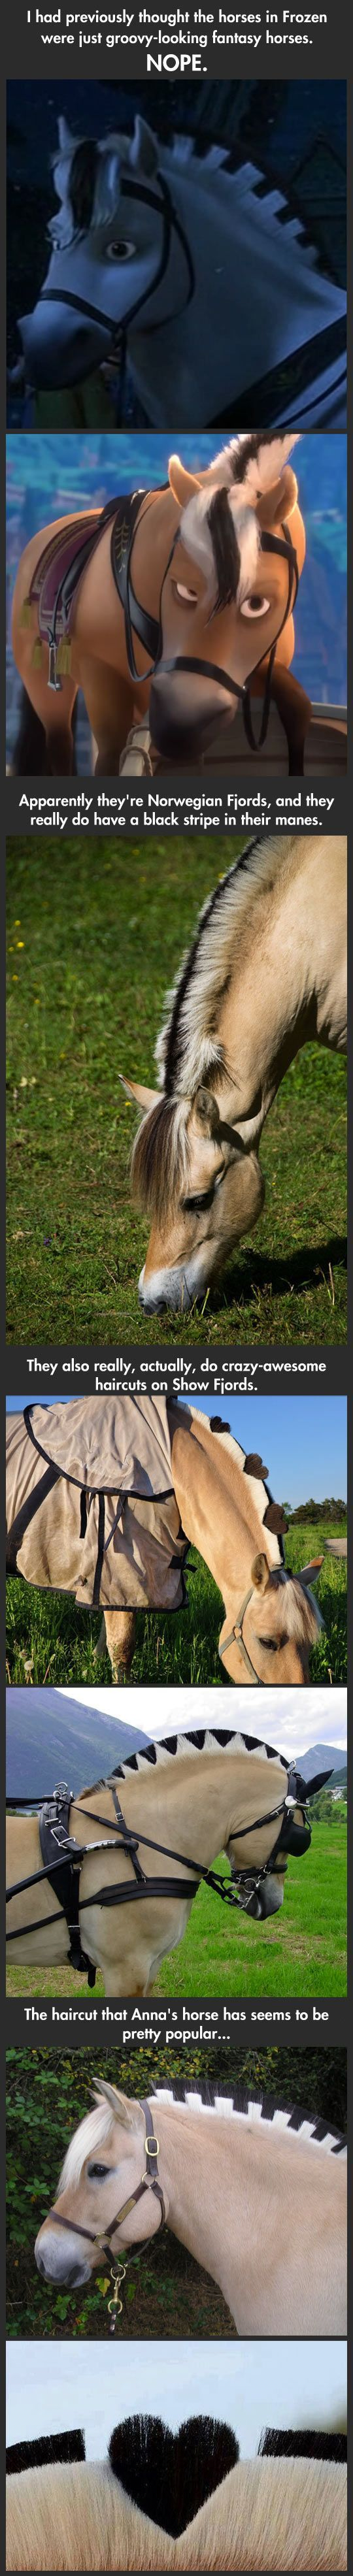 Funny Pictures of the day - The horses in Disney films are REAL! (60 Pics)